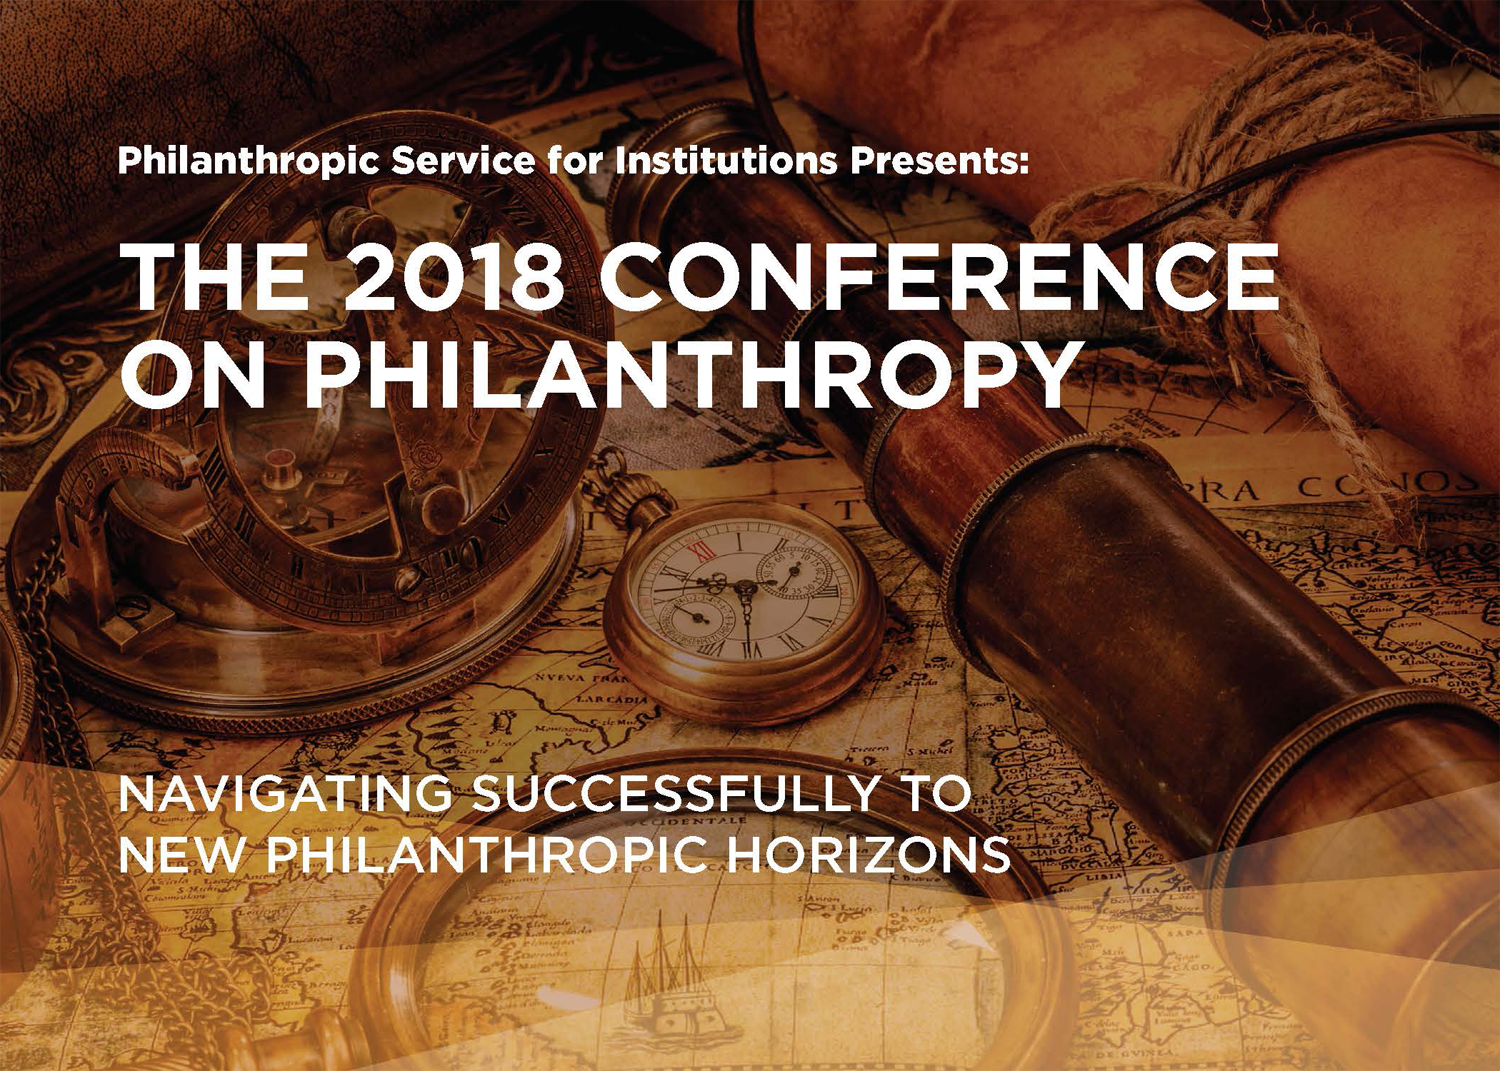 2018 Conference on Philanthropy